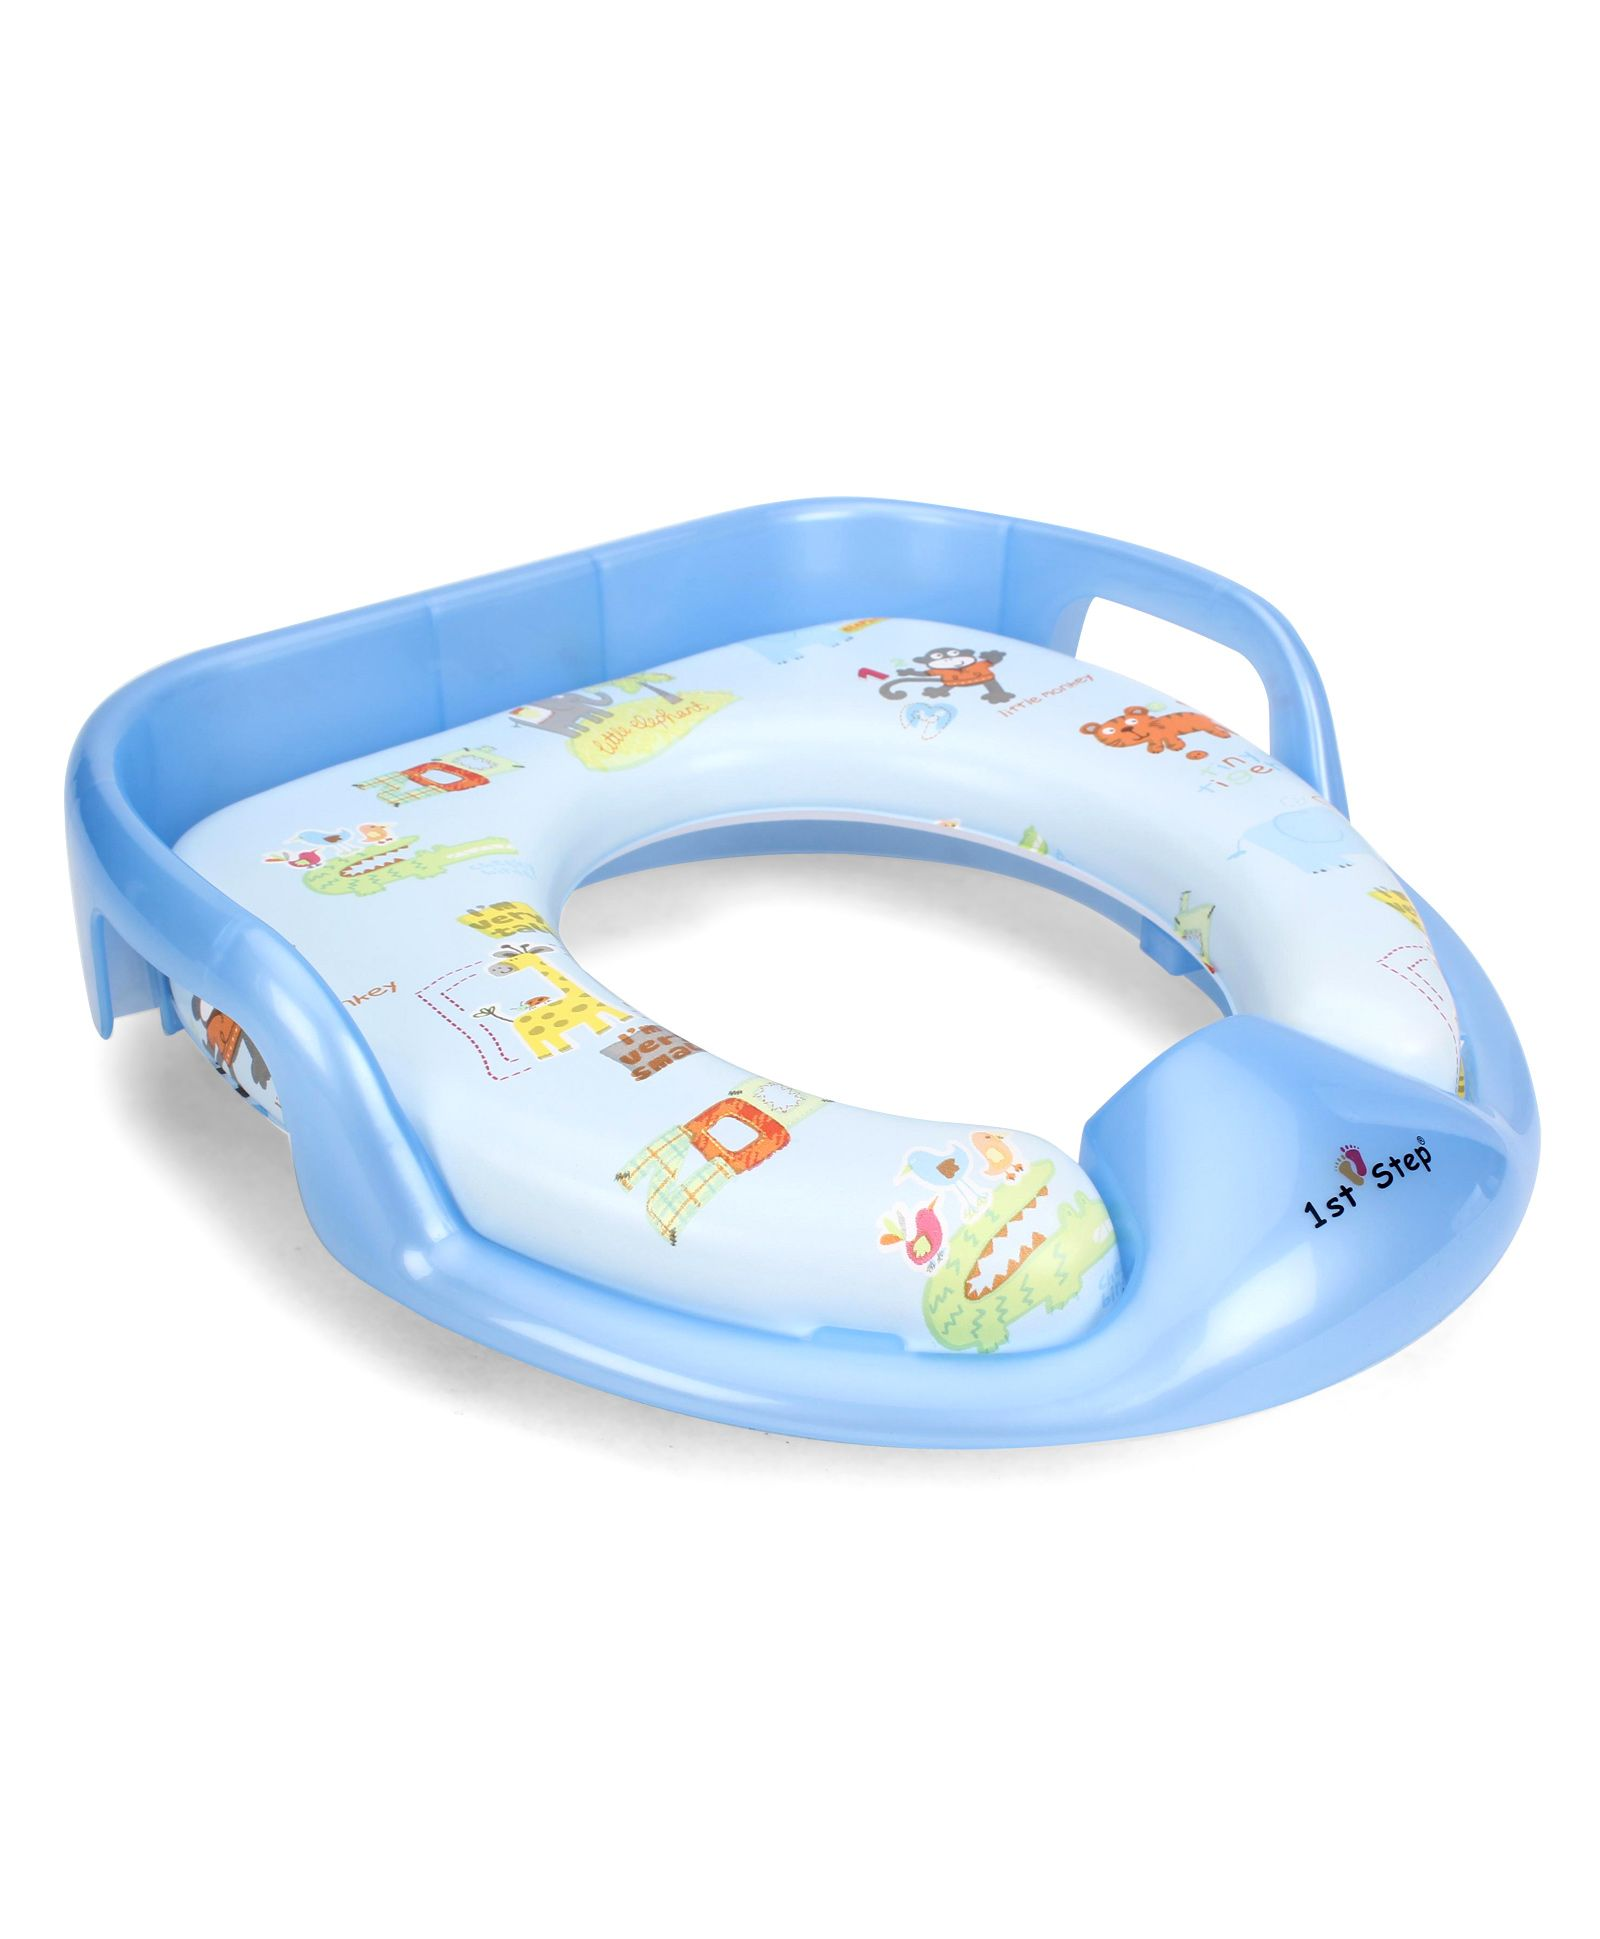 1st Step Potty Seat With Grip - Blue